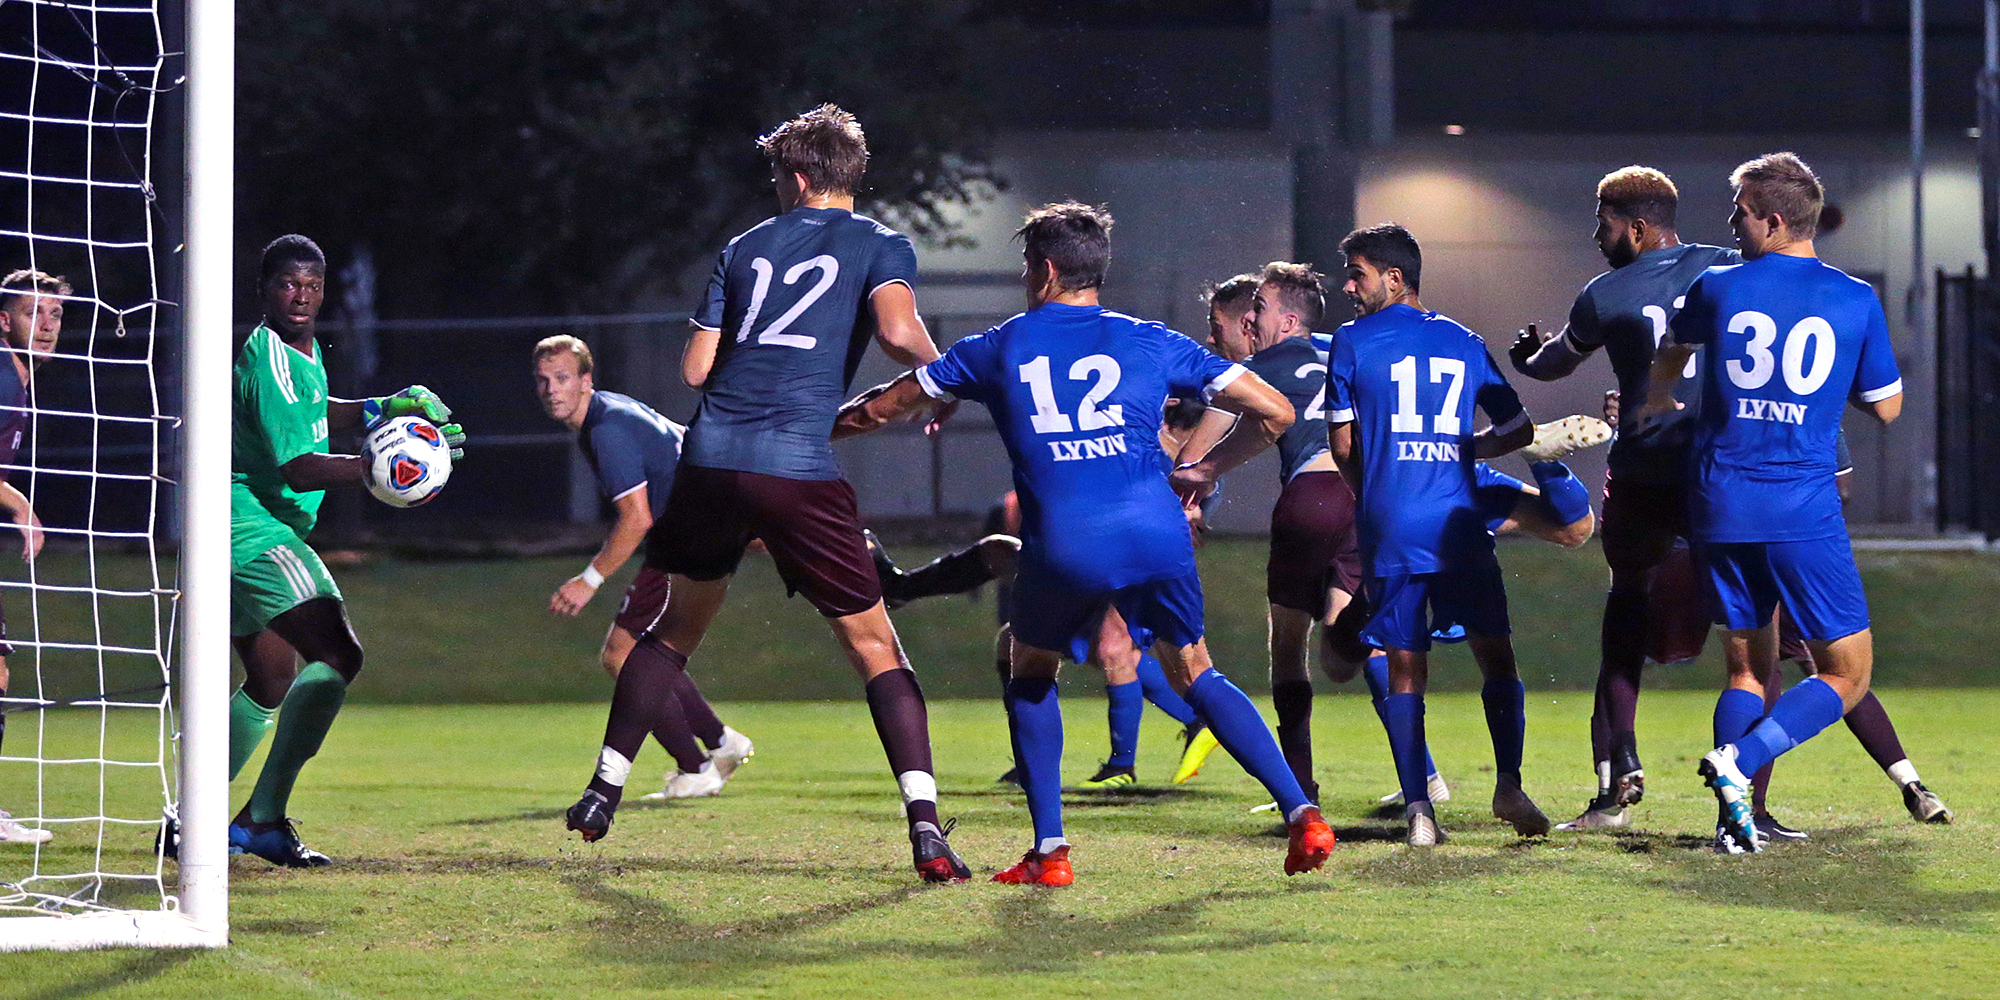 Hombach's Late Goal Seals Victory for Men's Soccer